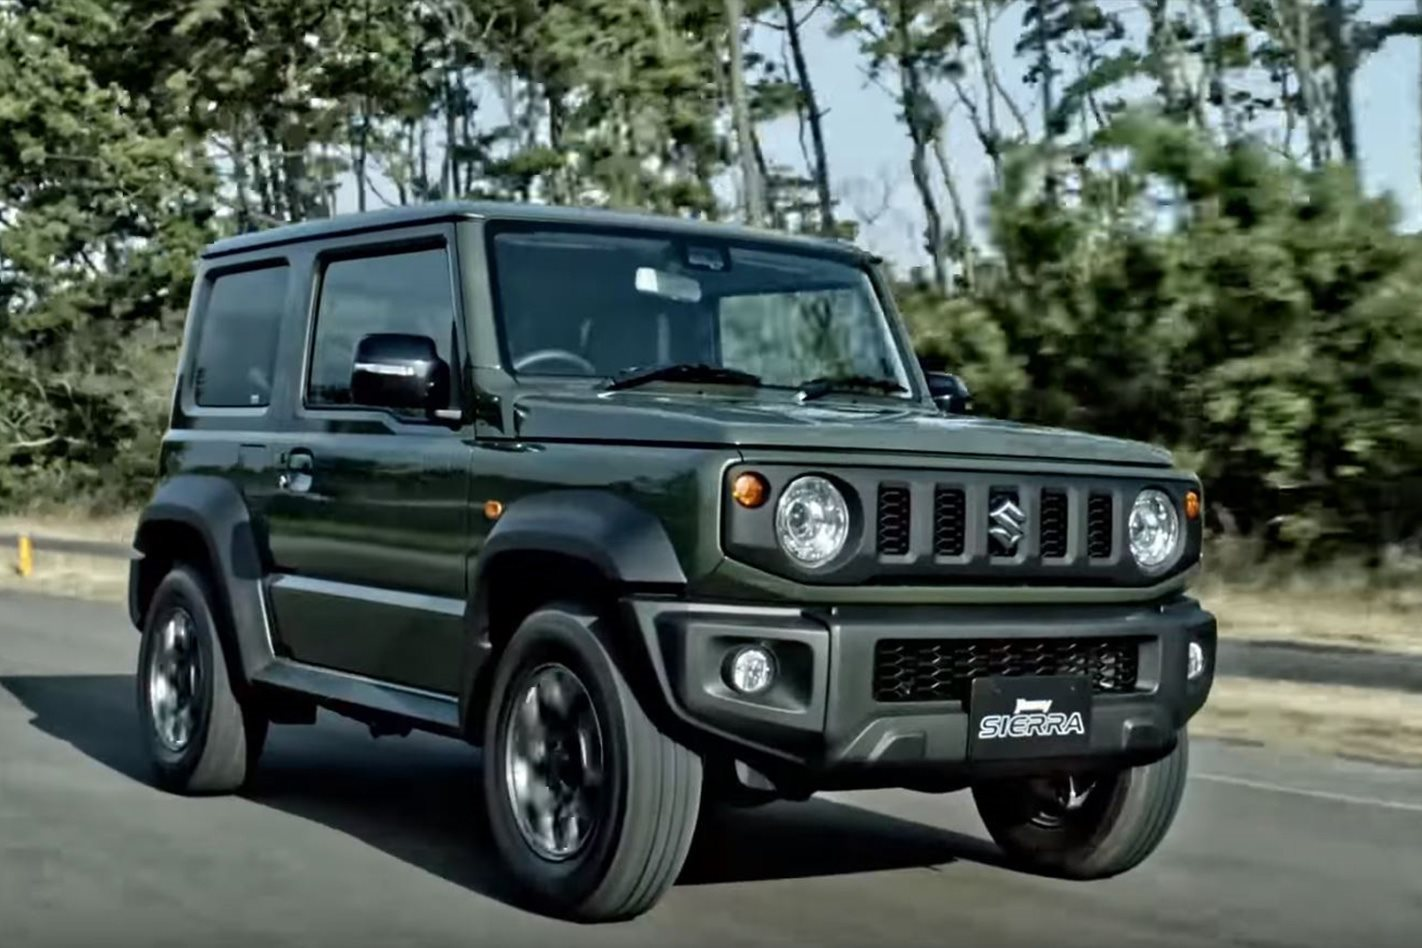 54 A 2020 Suzuki Jimny Model Price and Review